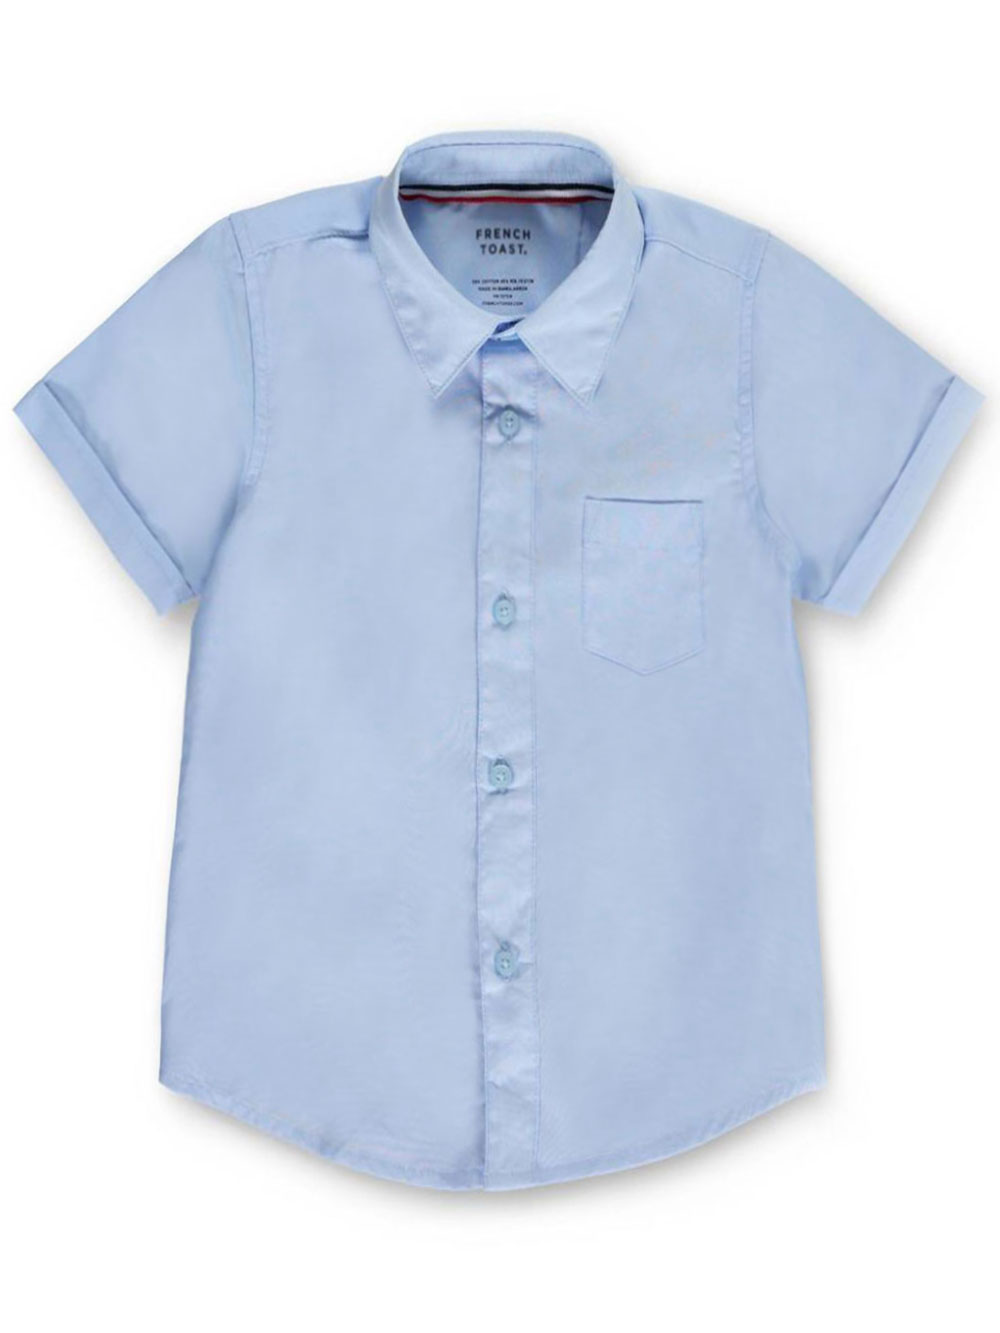 Size 20h Shirts for Boys